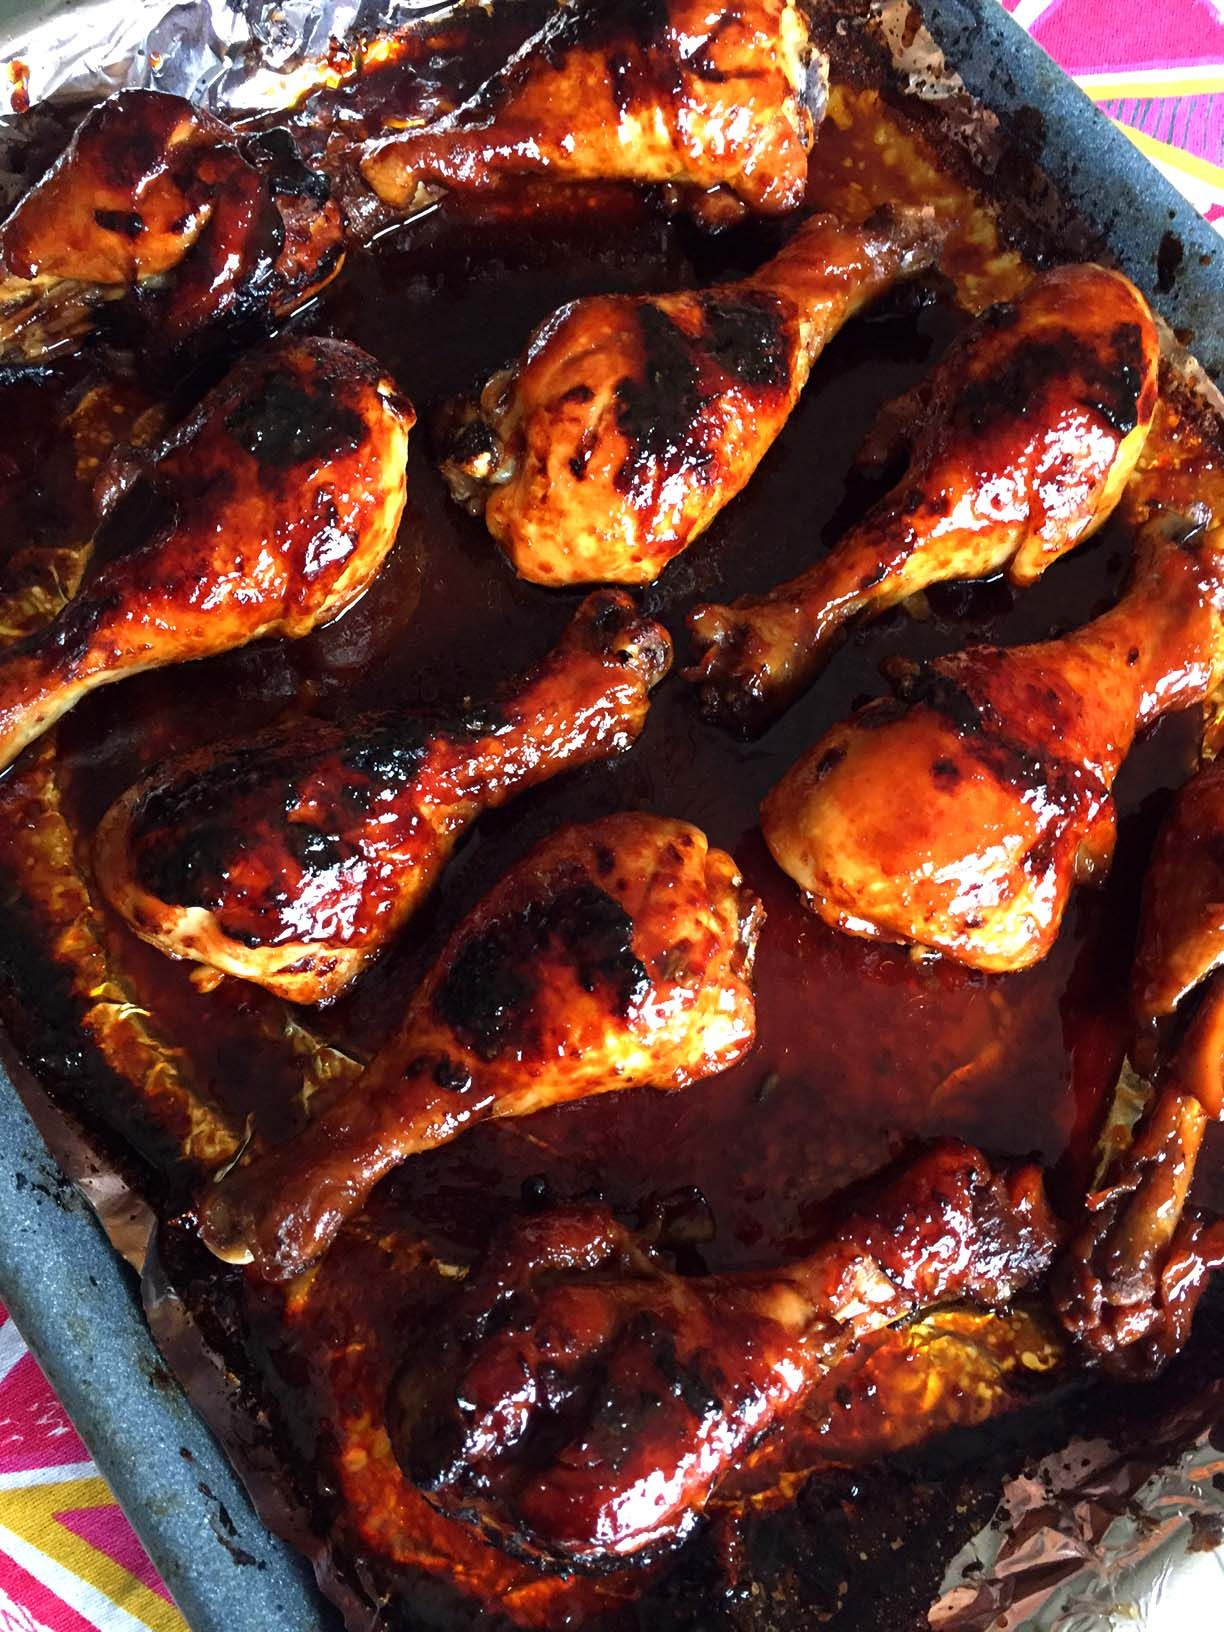 Honey Soy Bbq Baked Chicken Legs Recipe Baked Chicken Legs Bake Chicken Leg Recipe Chicken